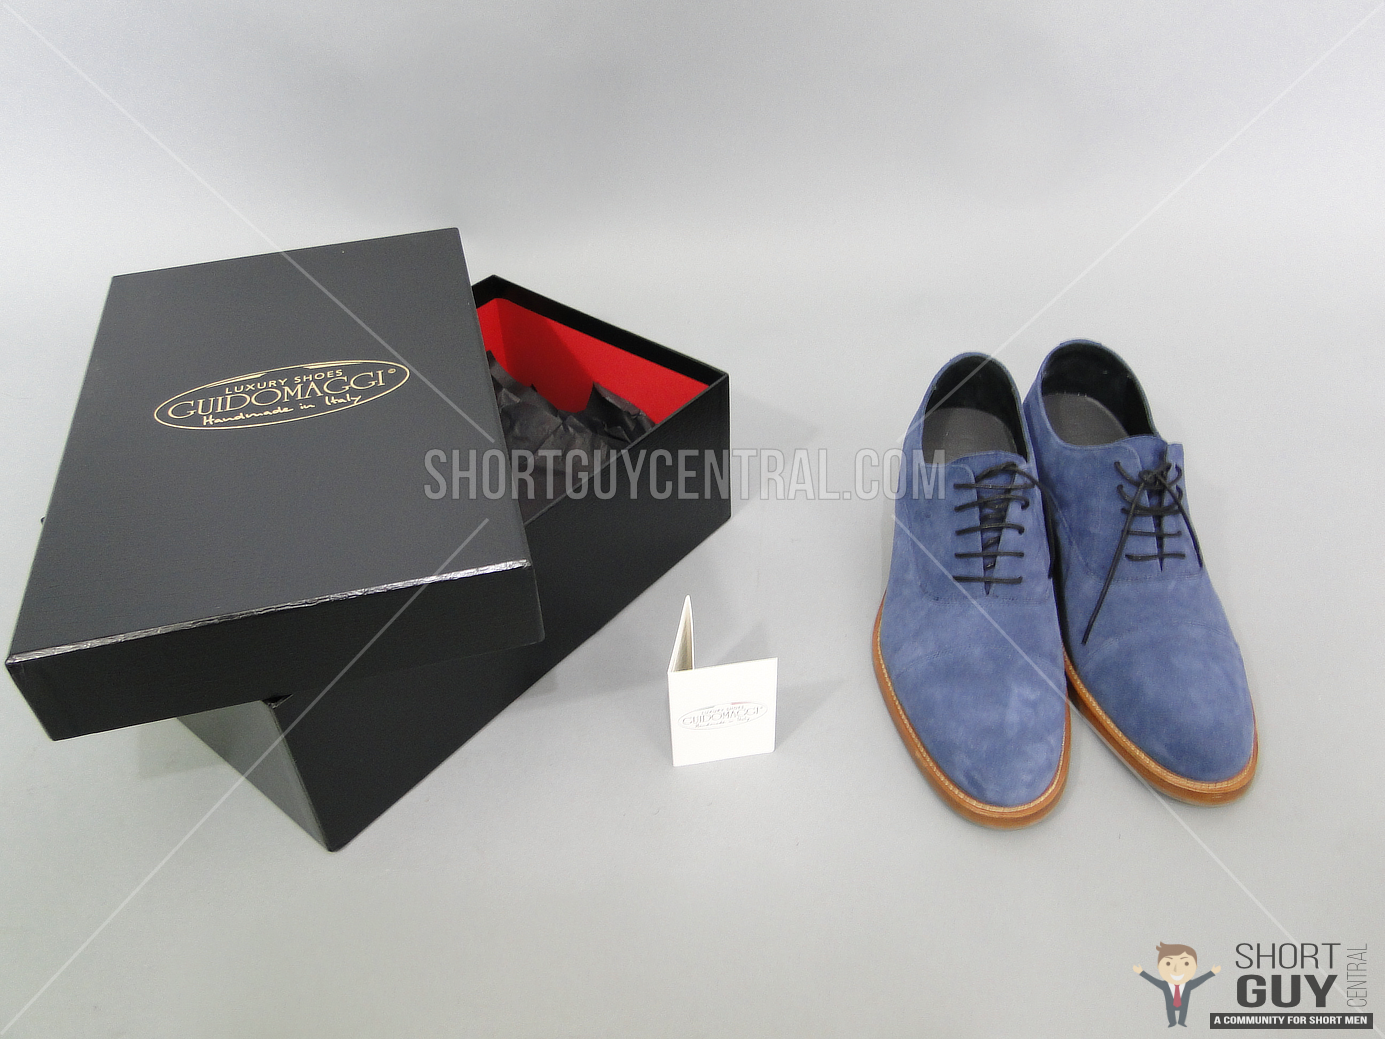 Fashion For Short Men: Guidomaggi Luxury Elevator Shoes - Cote D'Azure | ShortGuyCentral